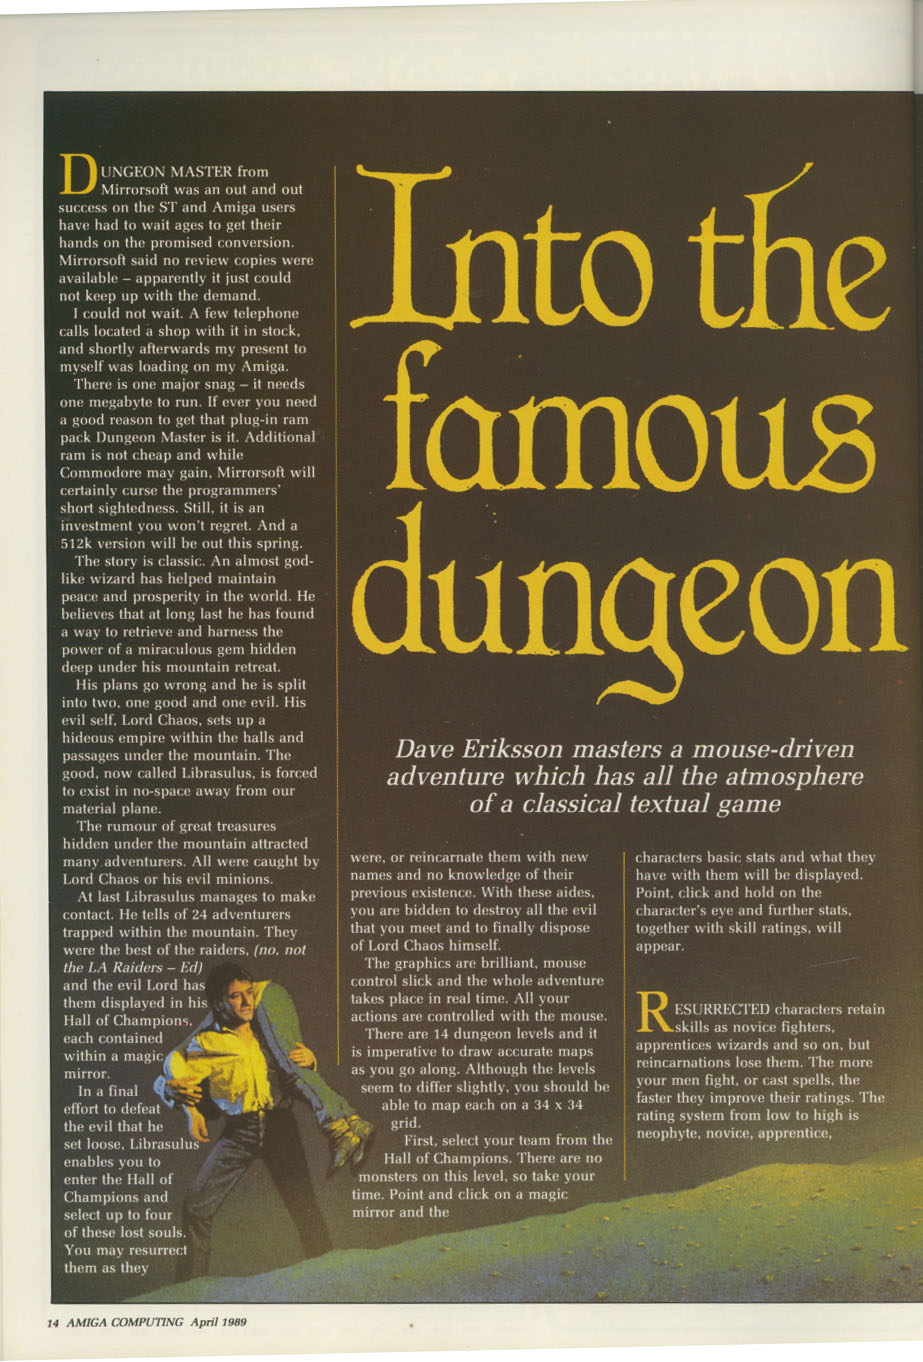 Dungeon Master for Amiga Review published in British / American magazine 'Amiga Computing', Issue #11 (Vol. 1 No. 11), Pages 14